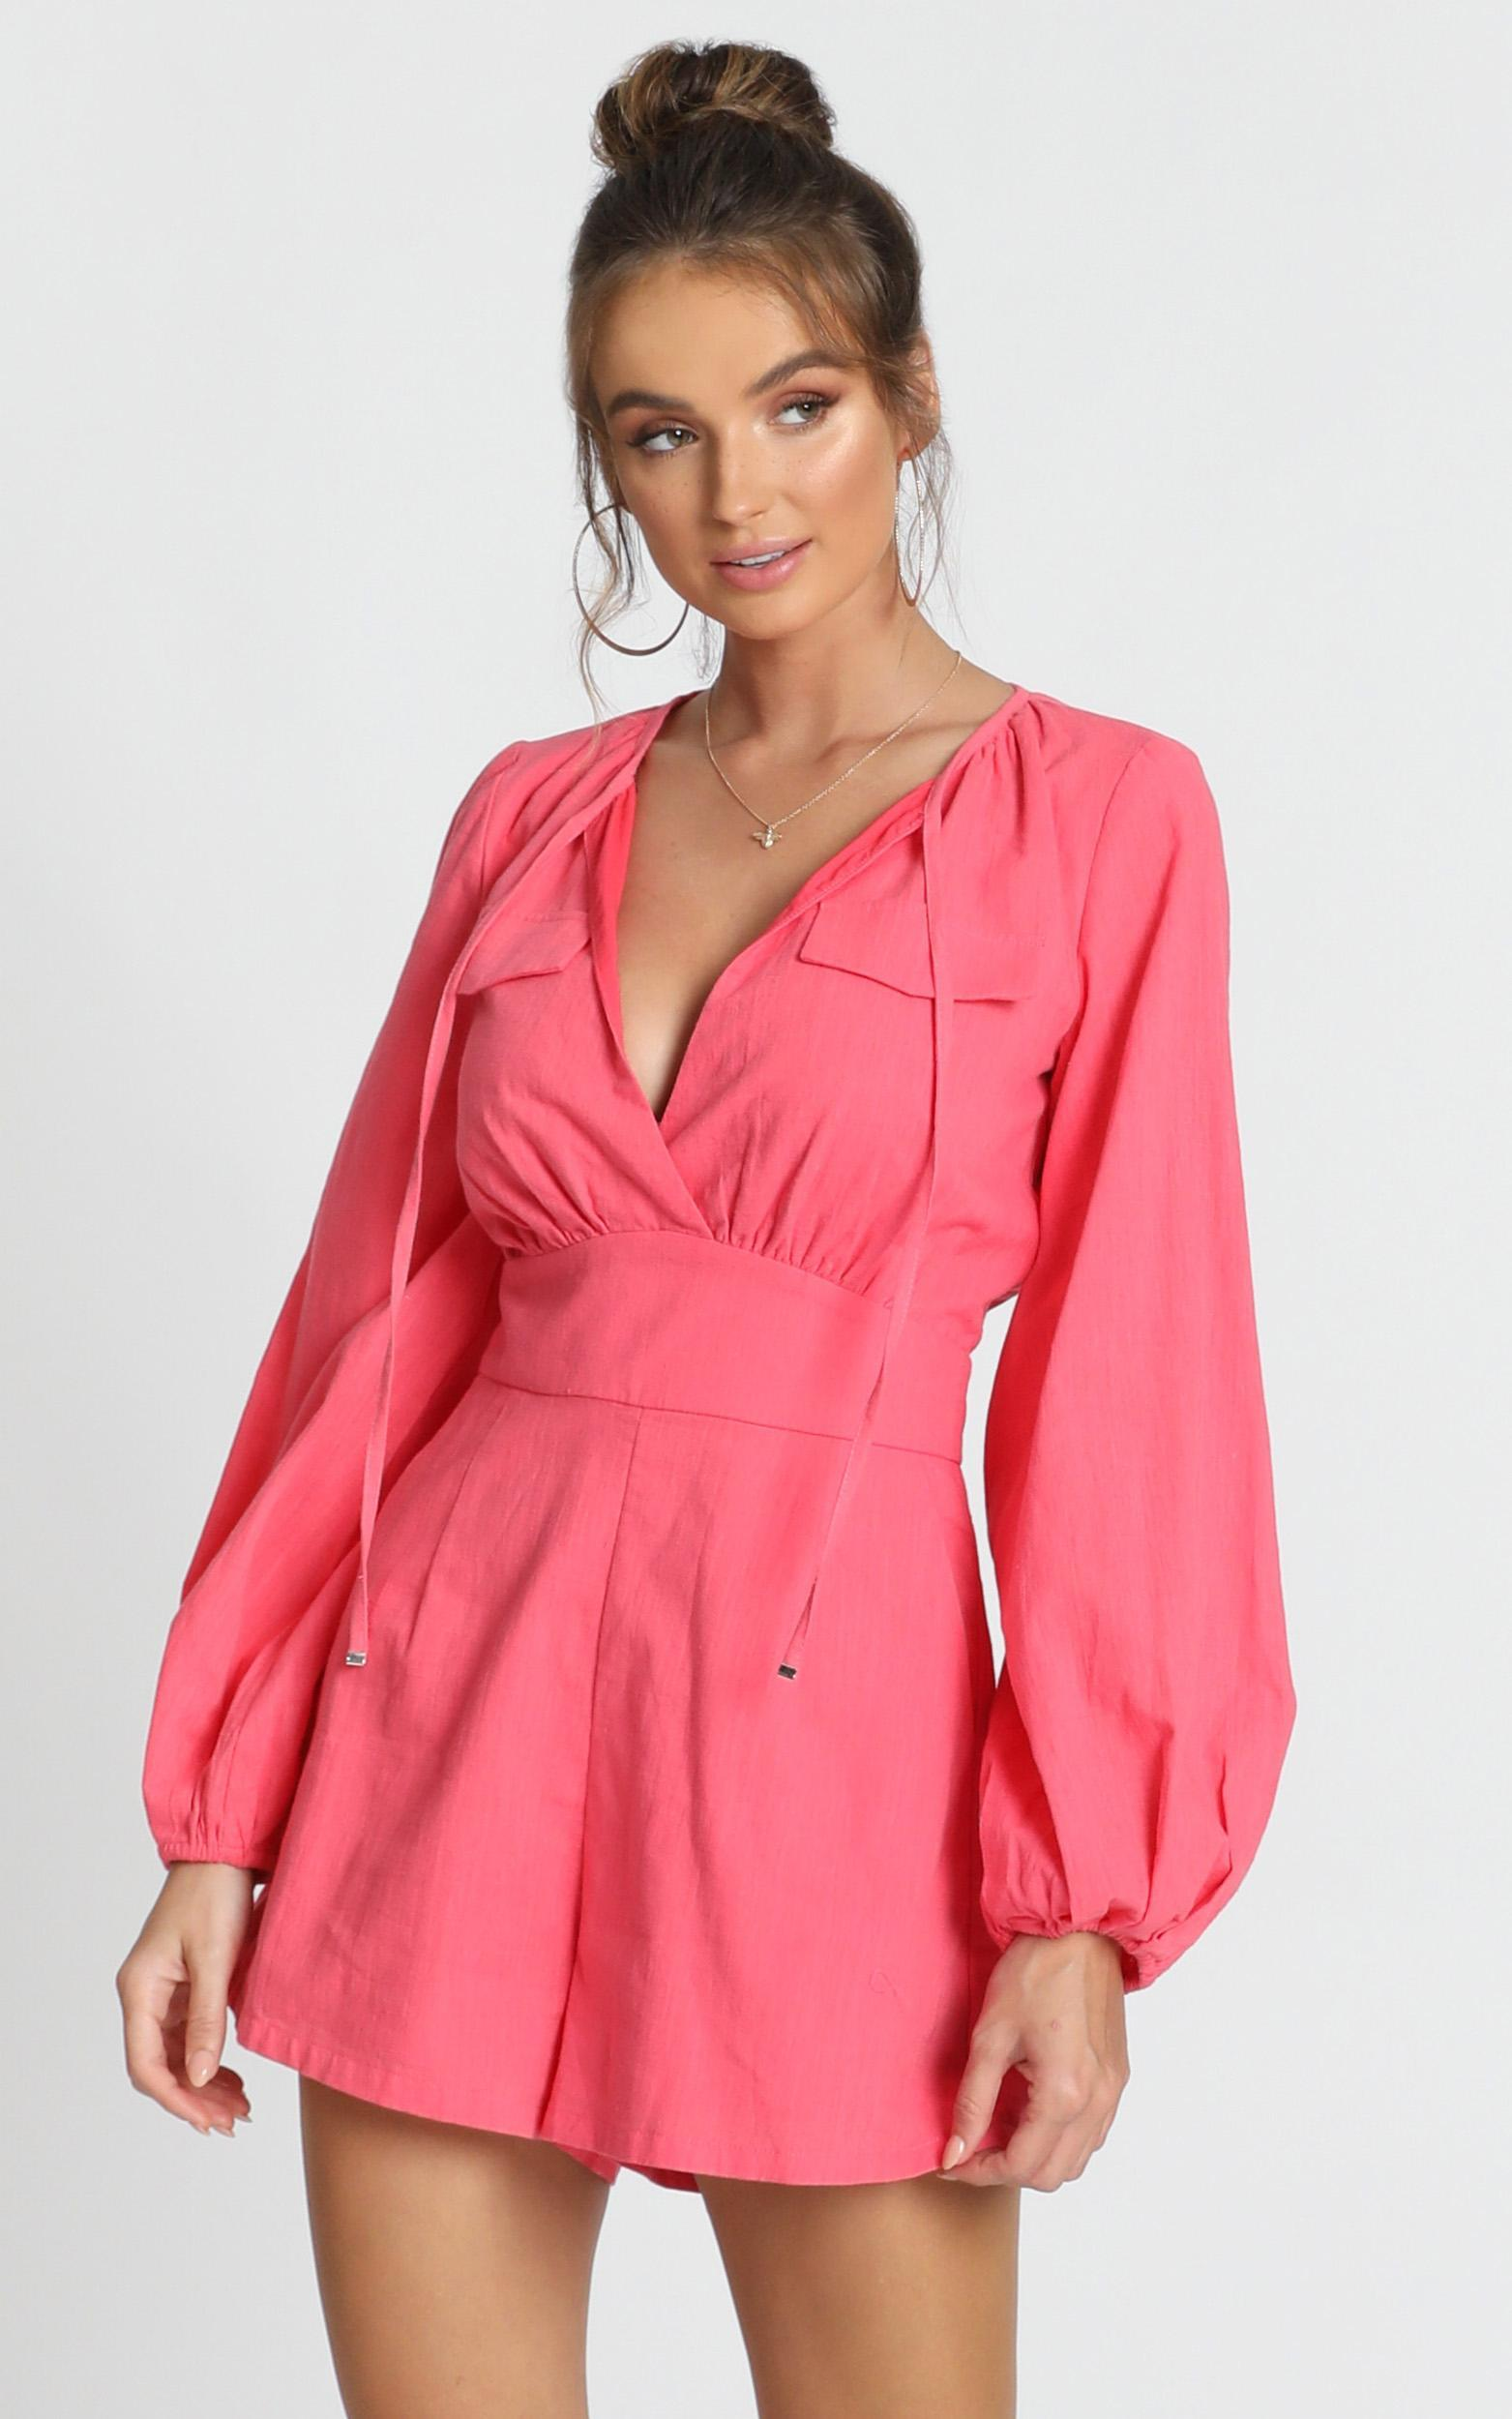 Moroccan Haze Playsuit in watermelon - 14 (XL), Pink, hi-res image number null